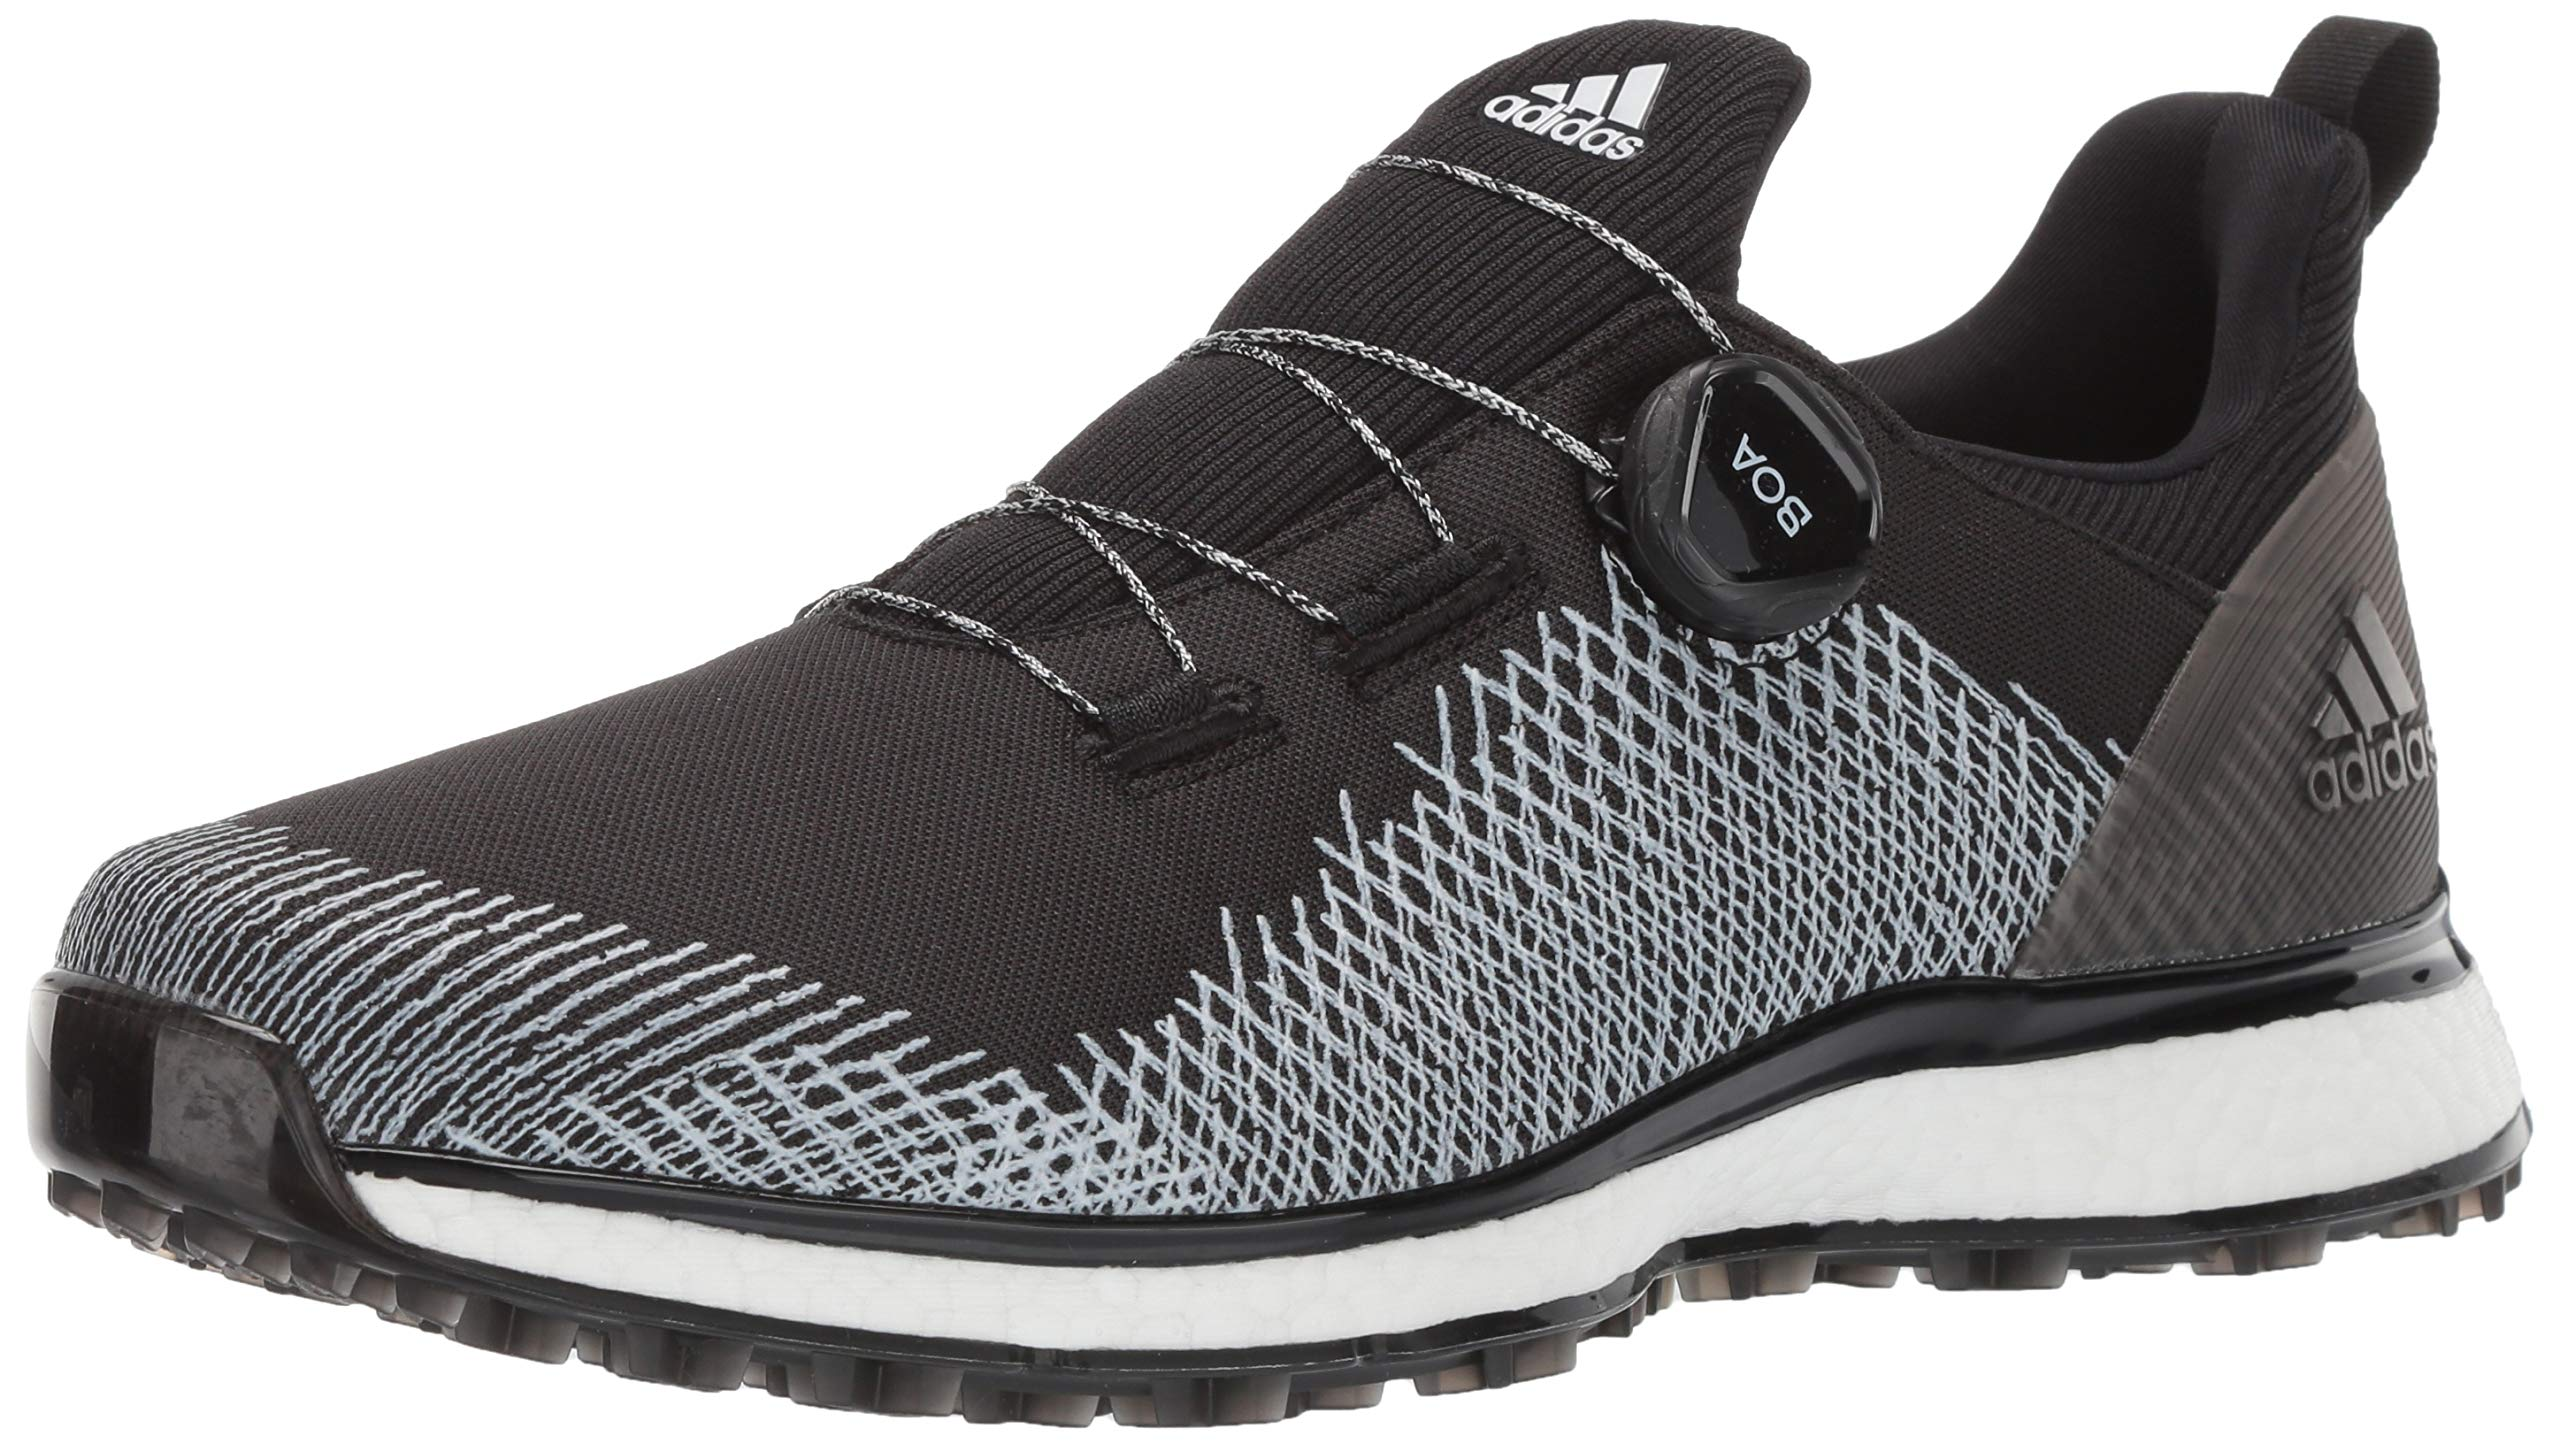 adidas Men's FORGEFIBER BOA Golf Shoe core black/ftwr white/hi-res yellow 9.5 M/W US by adidas